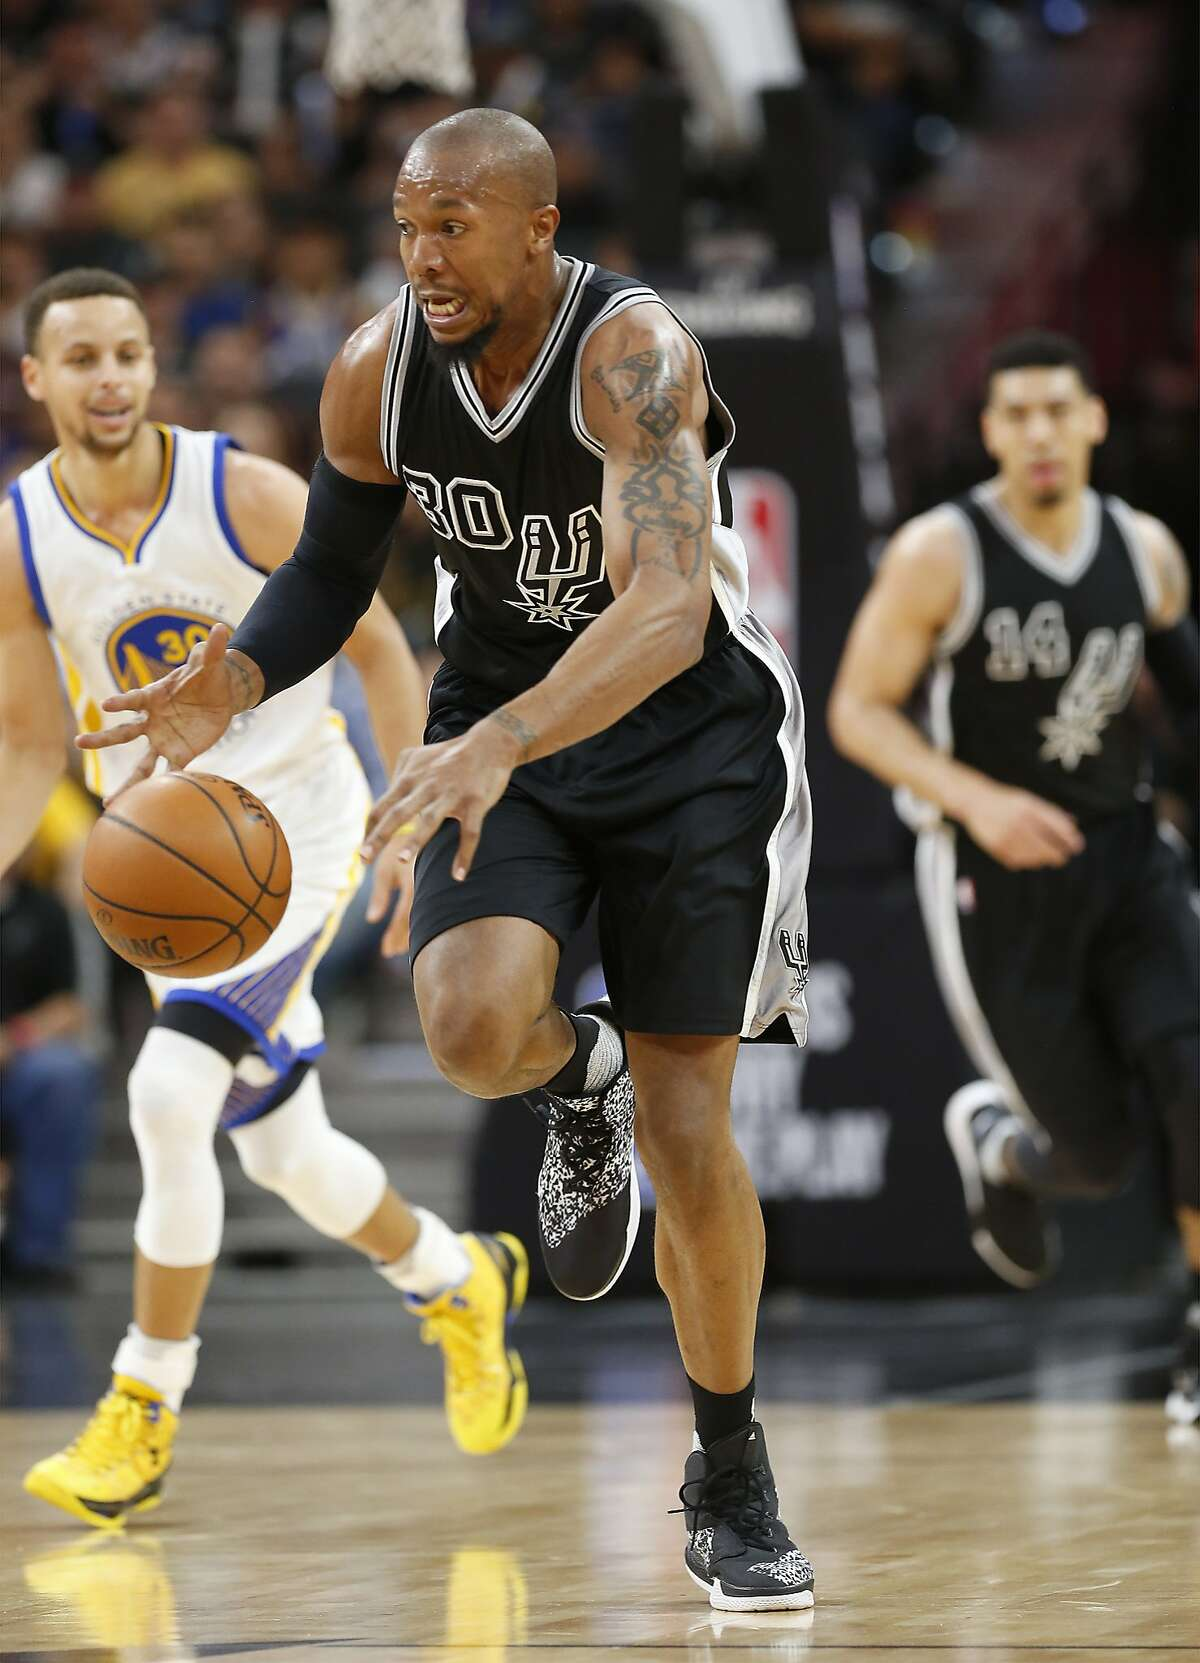 Arriving: Forward David West from the San Antonio Spurs